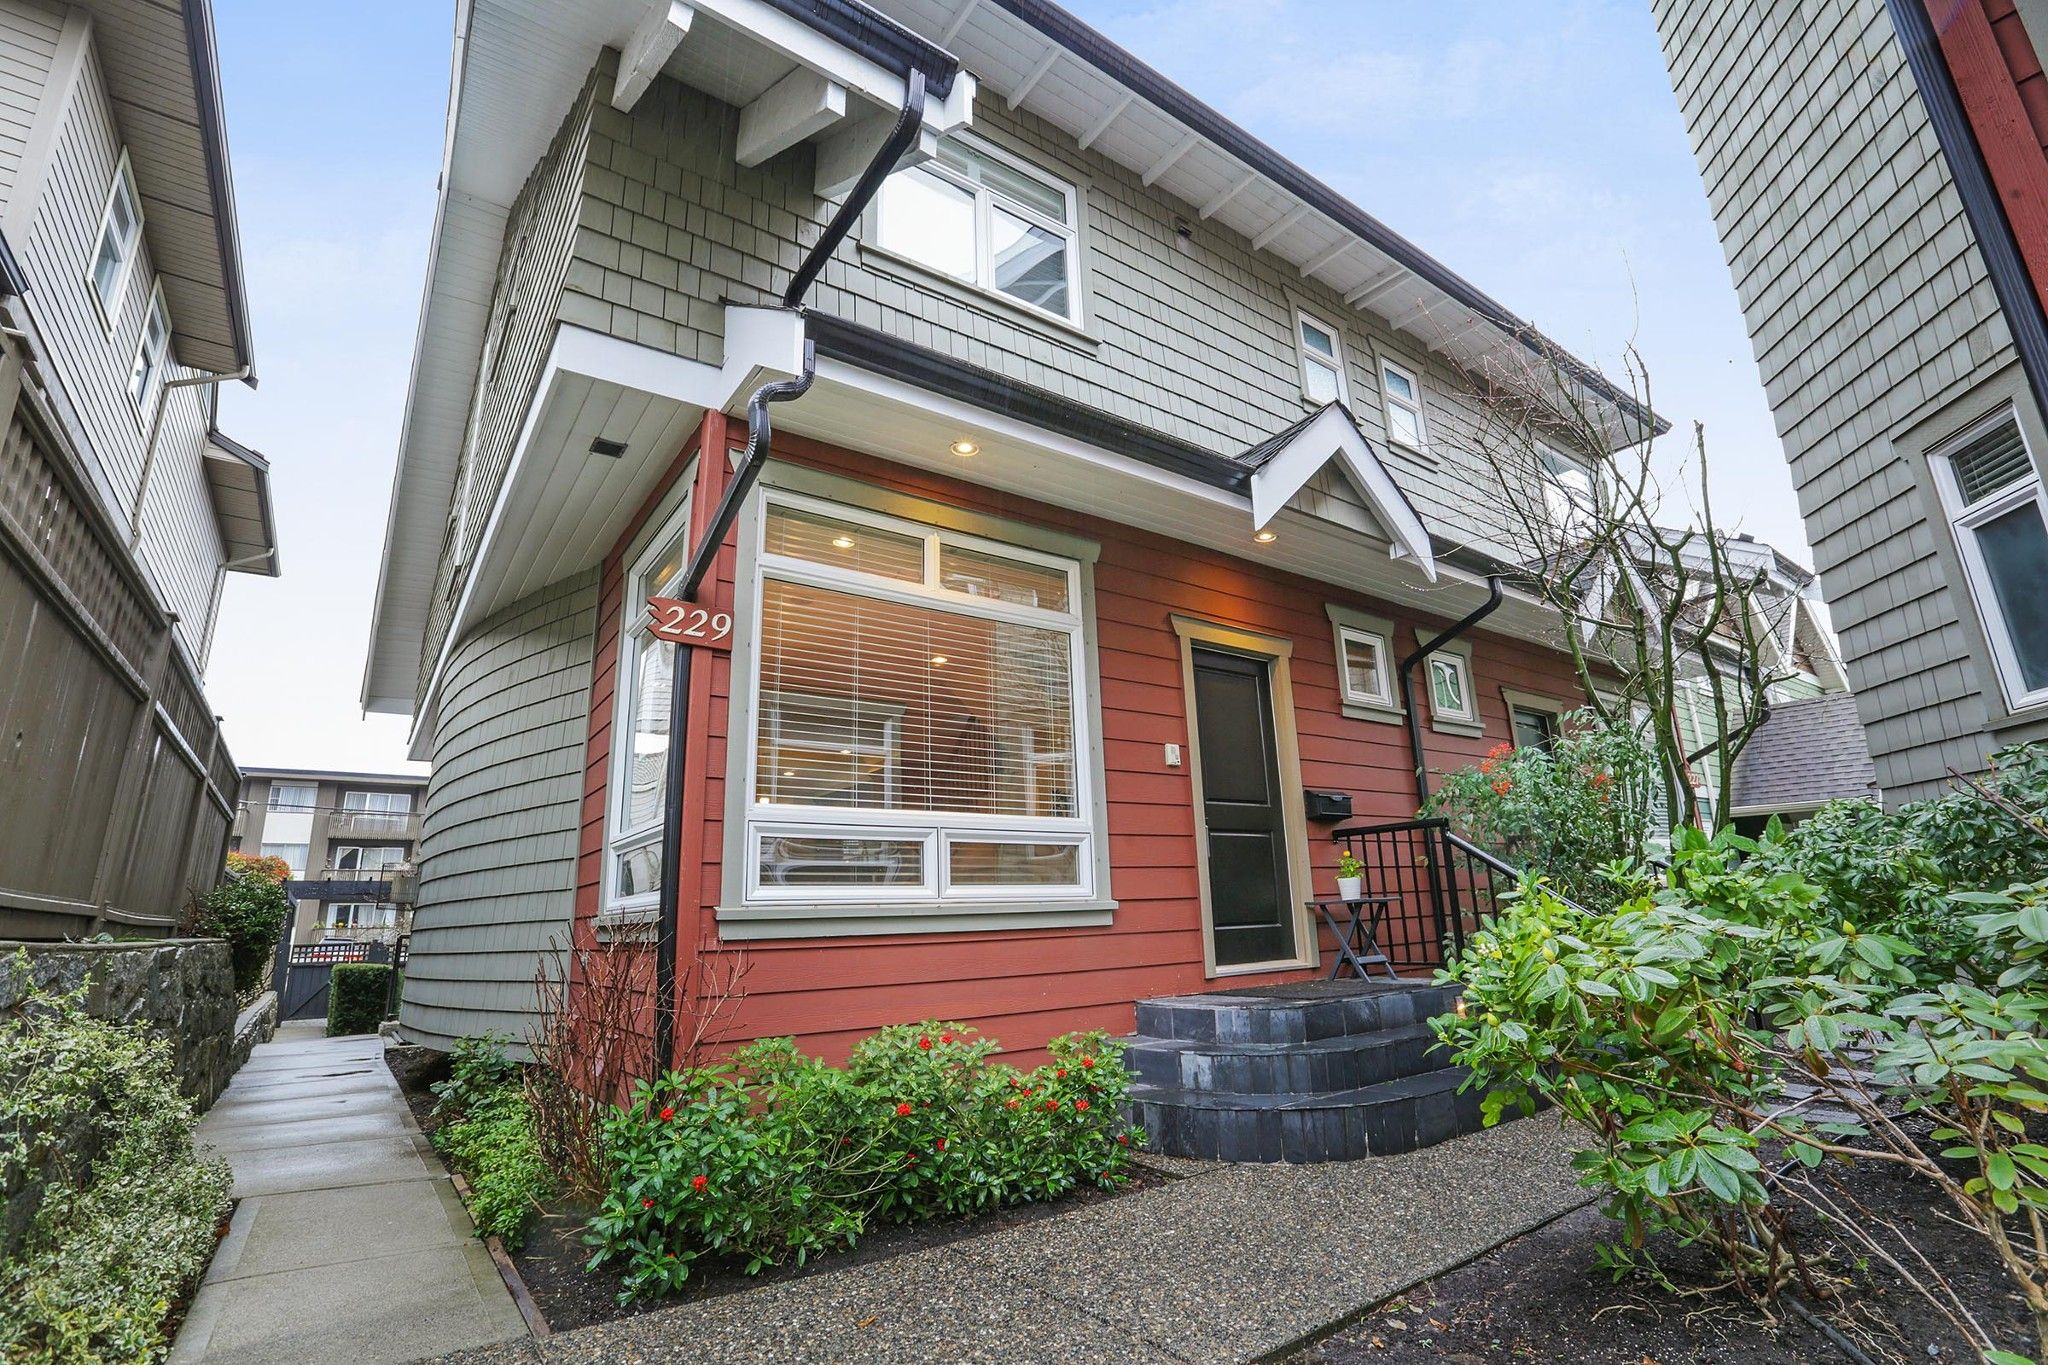 Main Photo: 229 E 17TH Street in North Vancouver: Central Lonsdale 1/2 Duplex for sale : MLS®# R2252507